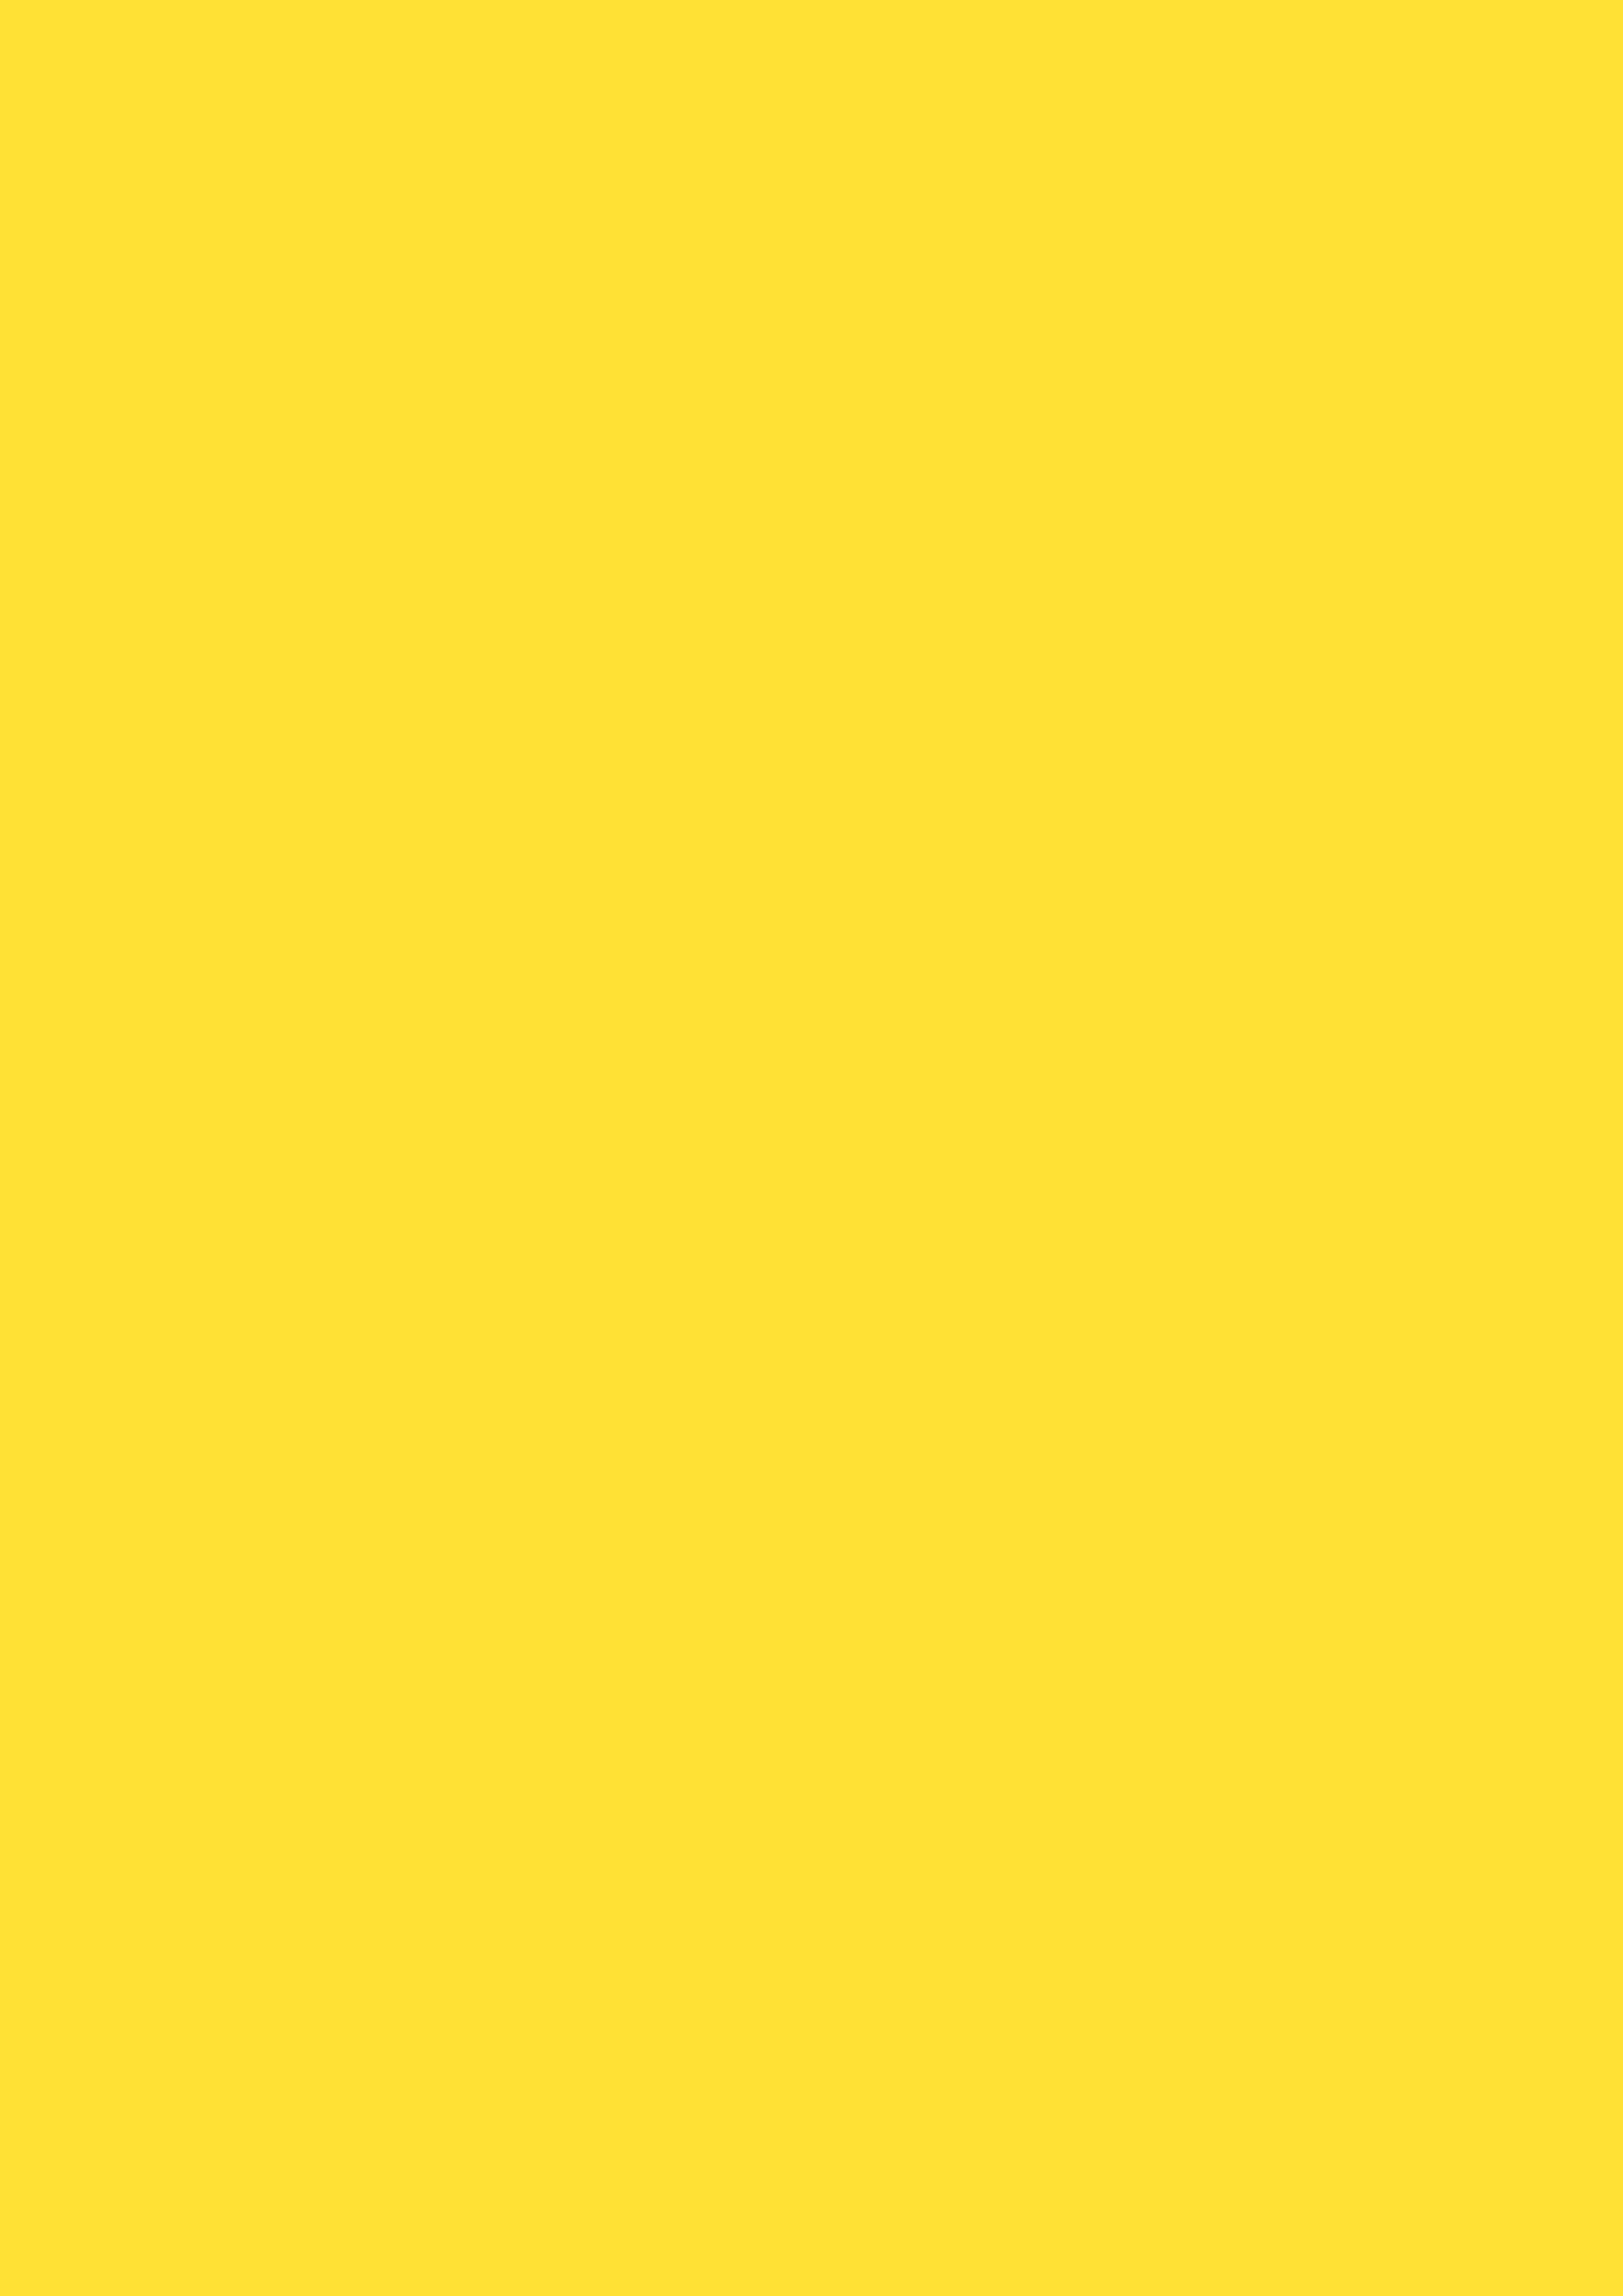 2480x3508 Banana Yellow Solid Color Background